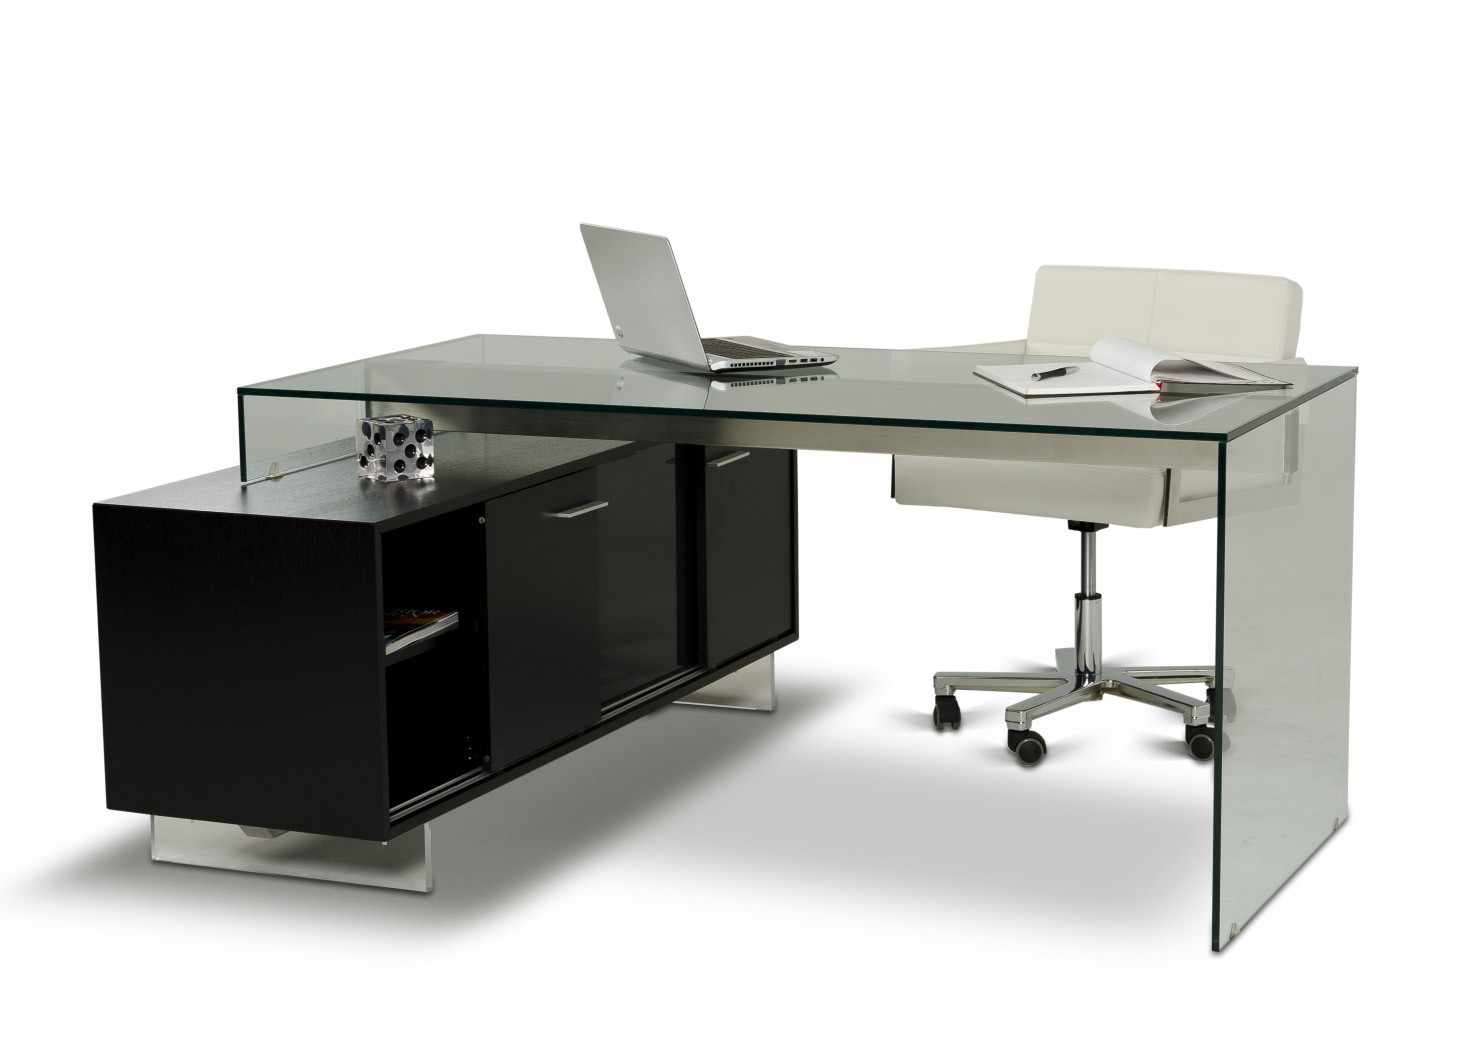 Alaska black desk for Contemporary office chairs modern